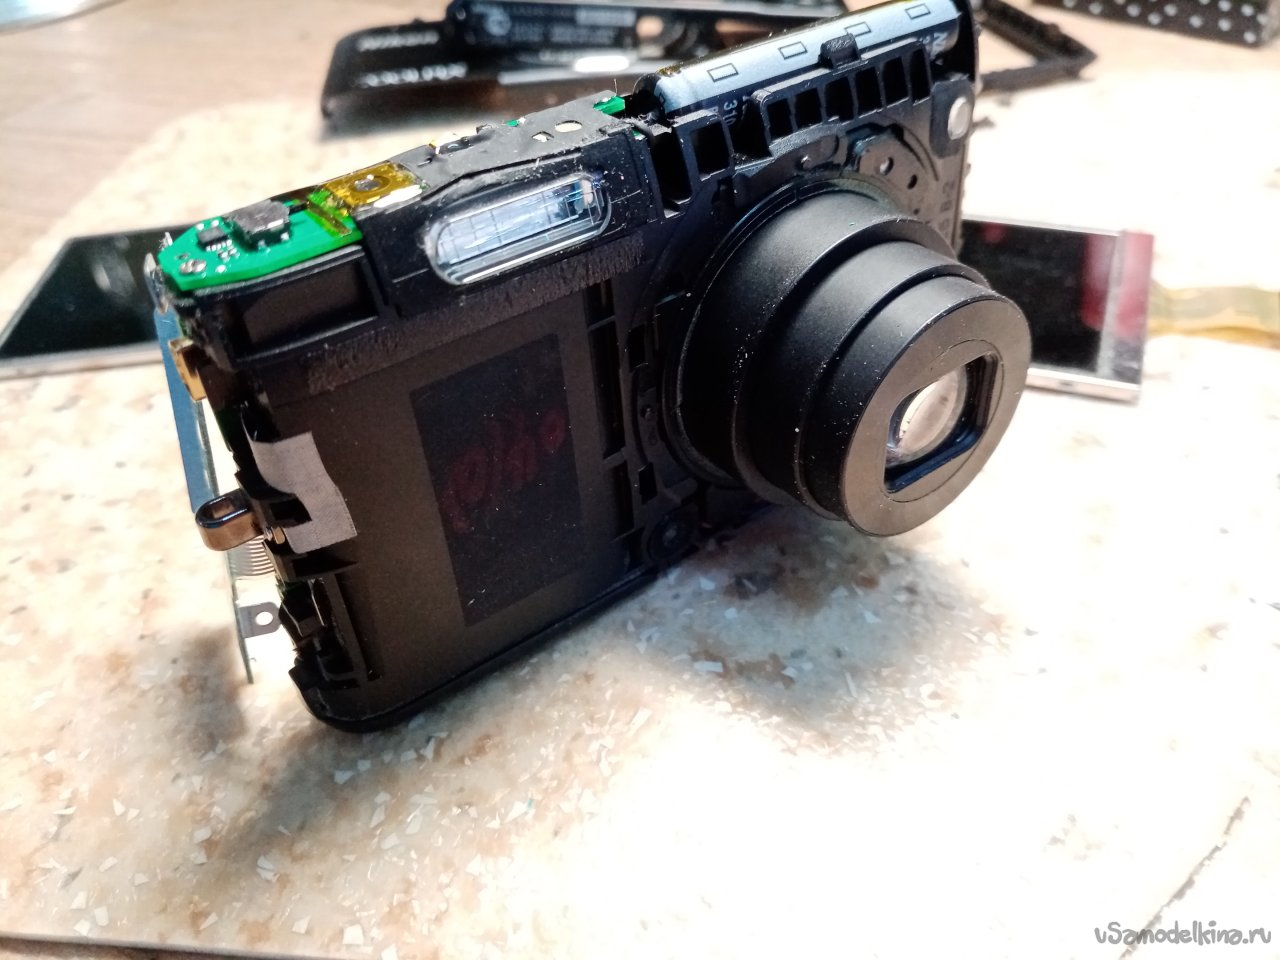 Display replacement. Nikon Coolpix 3500